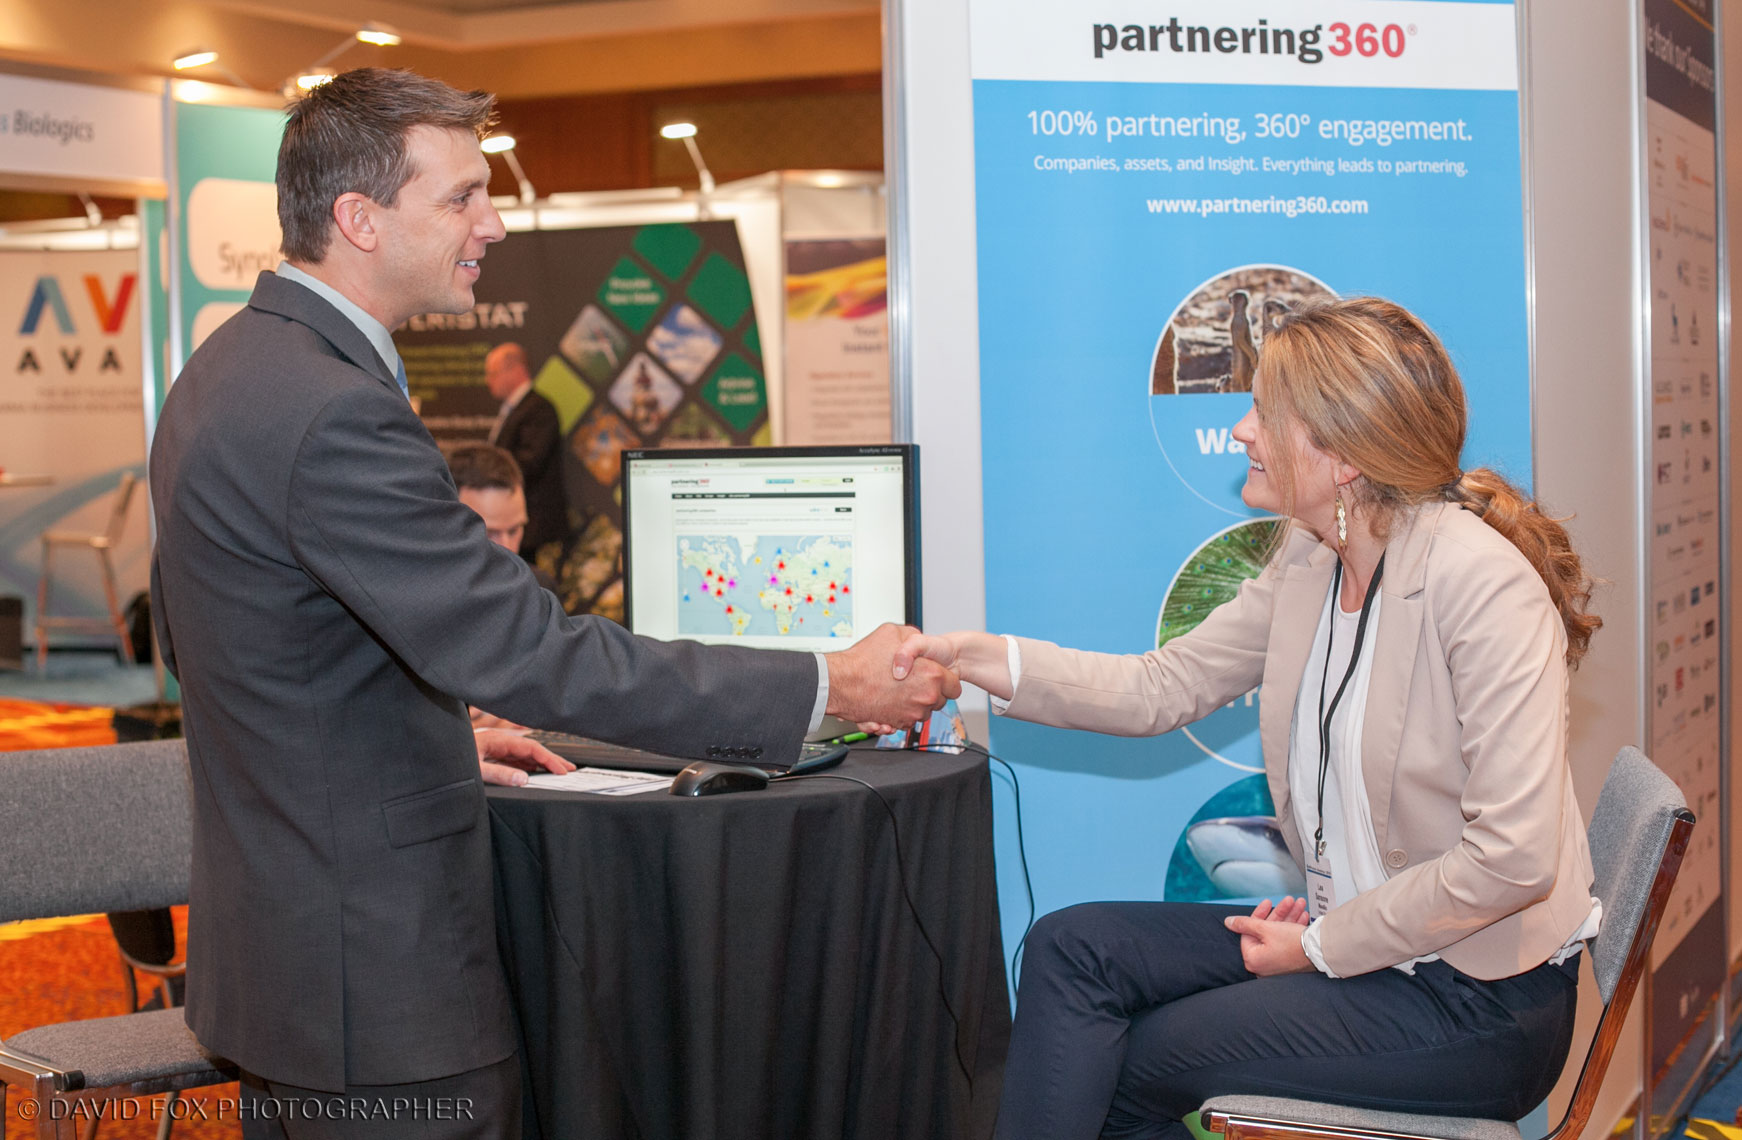 Trade Show Vendor and Attendee Shake Hands at Meeting